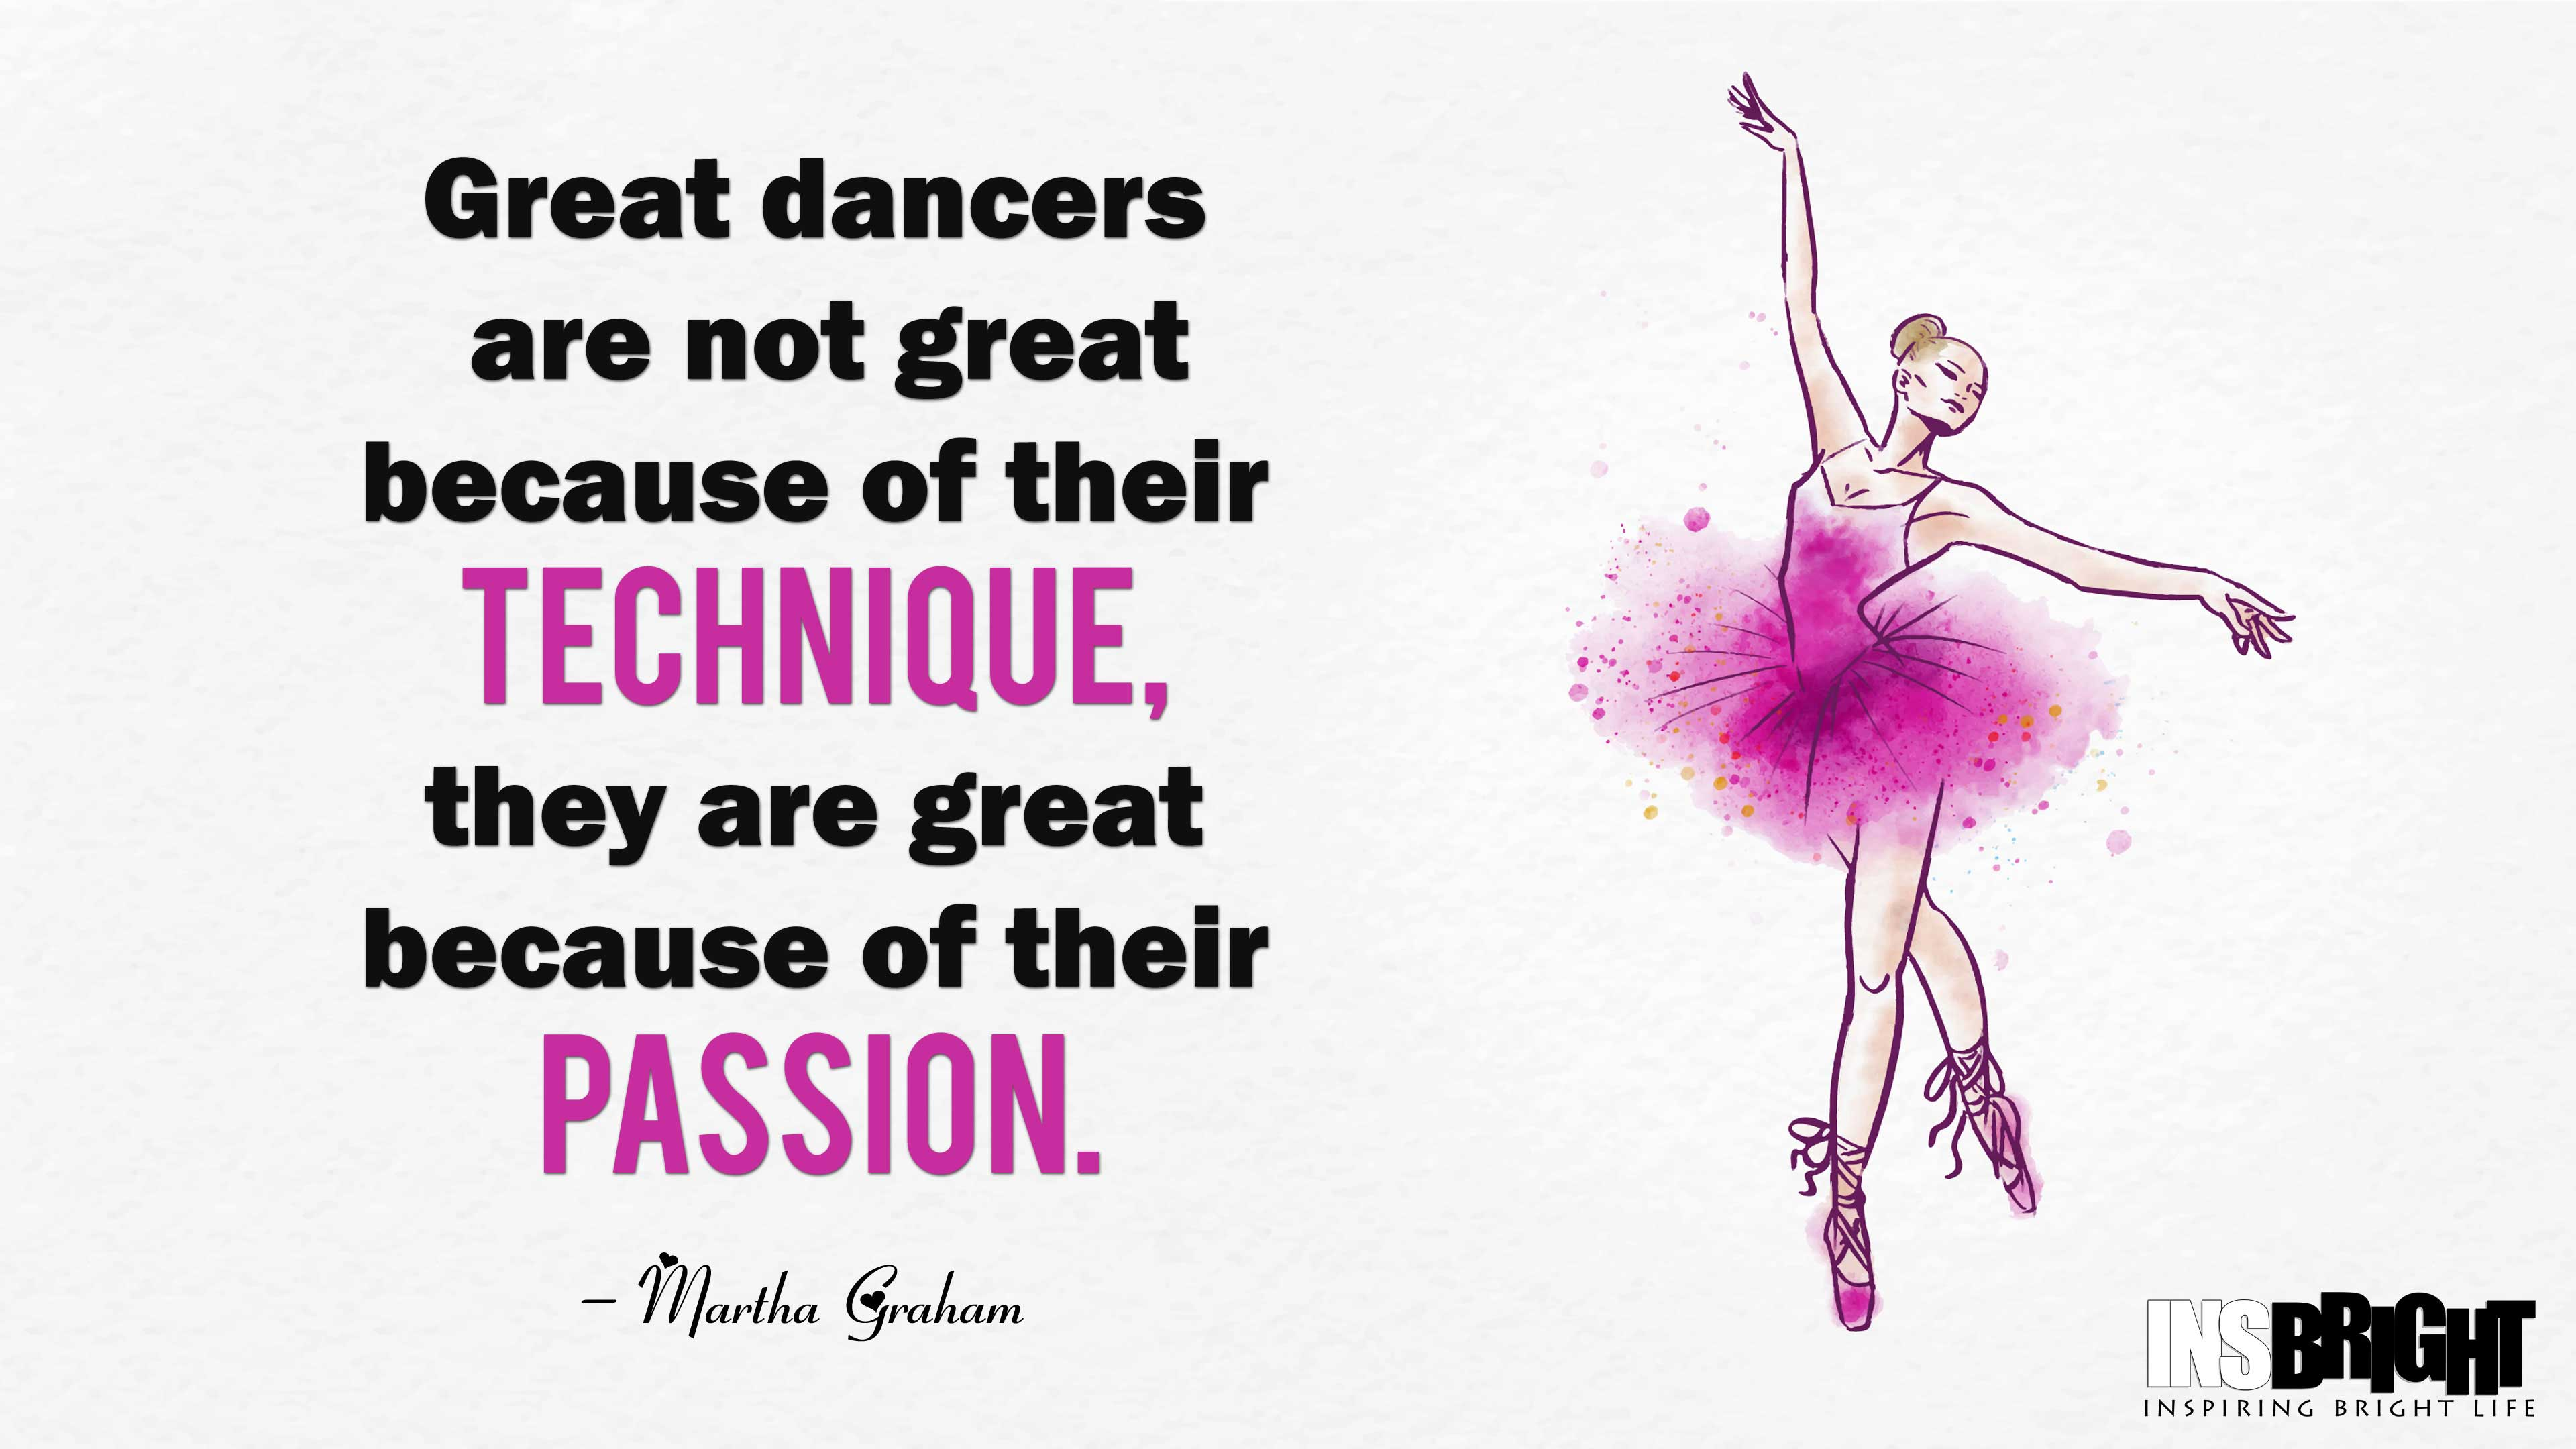 Inspirational Dance Quotes Fascinating 10 Inspirational Dance Quotes Imagesfamous Dancer  Insbright